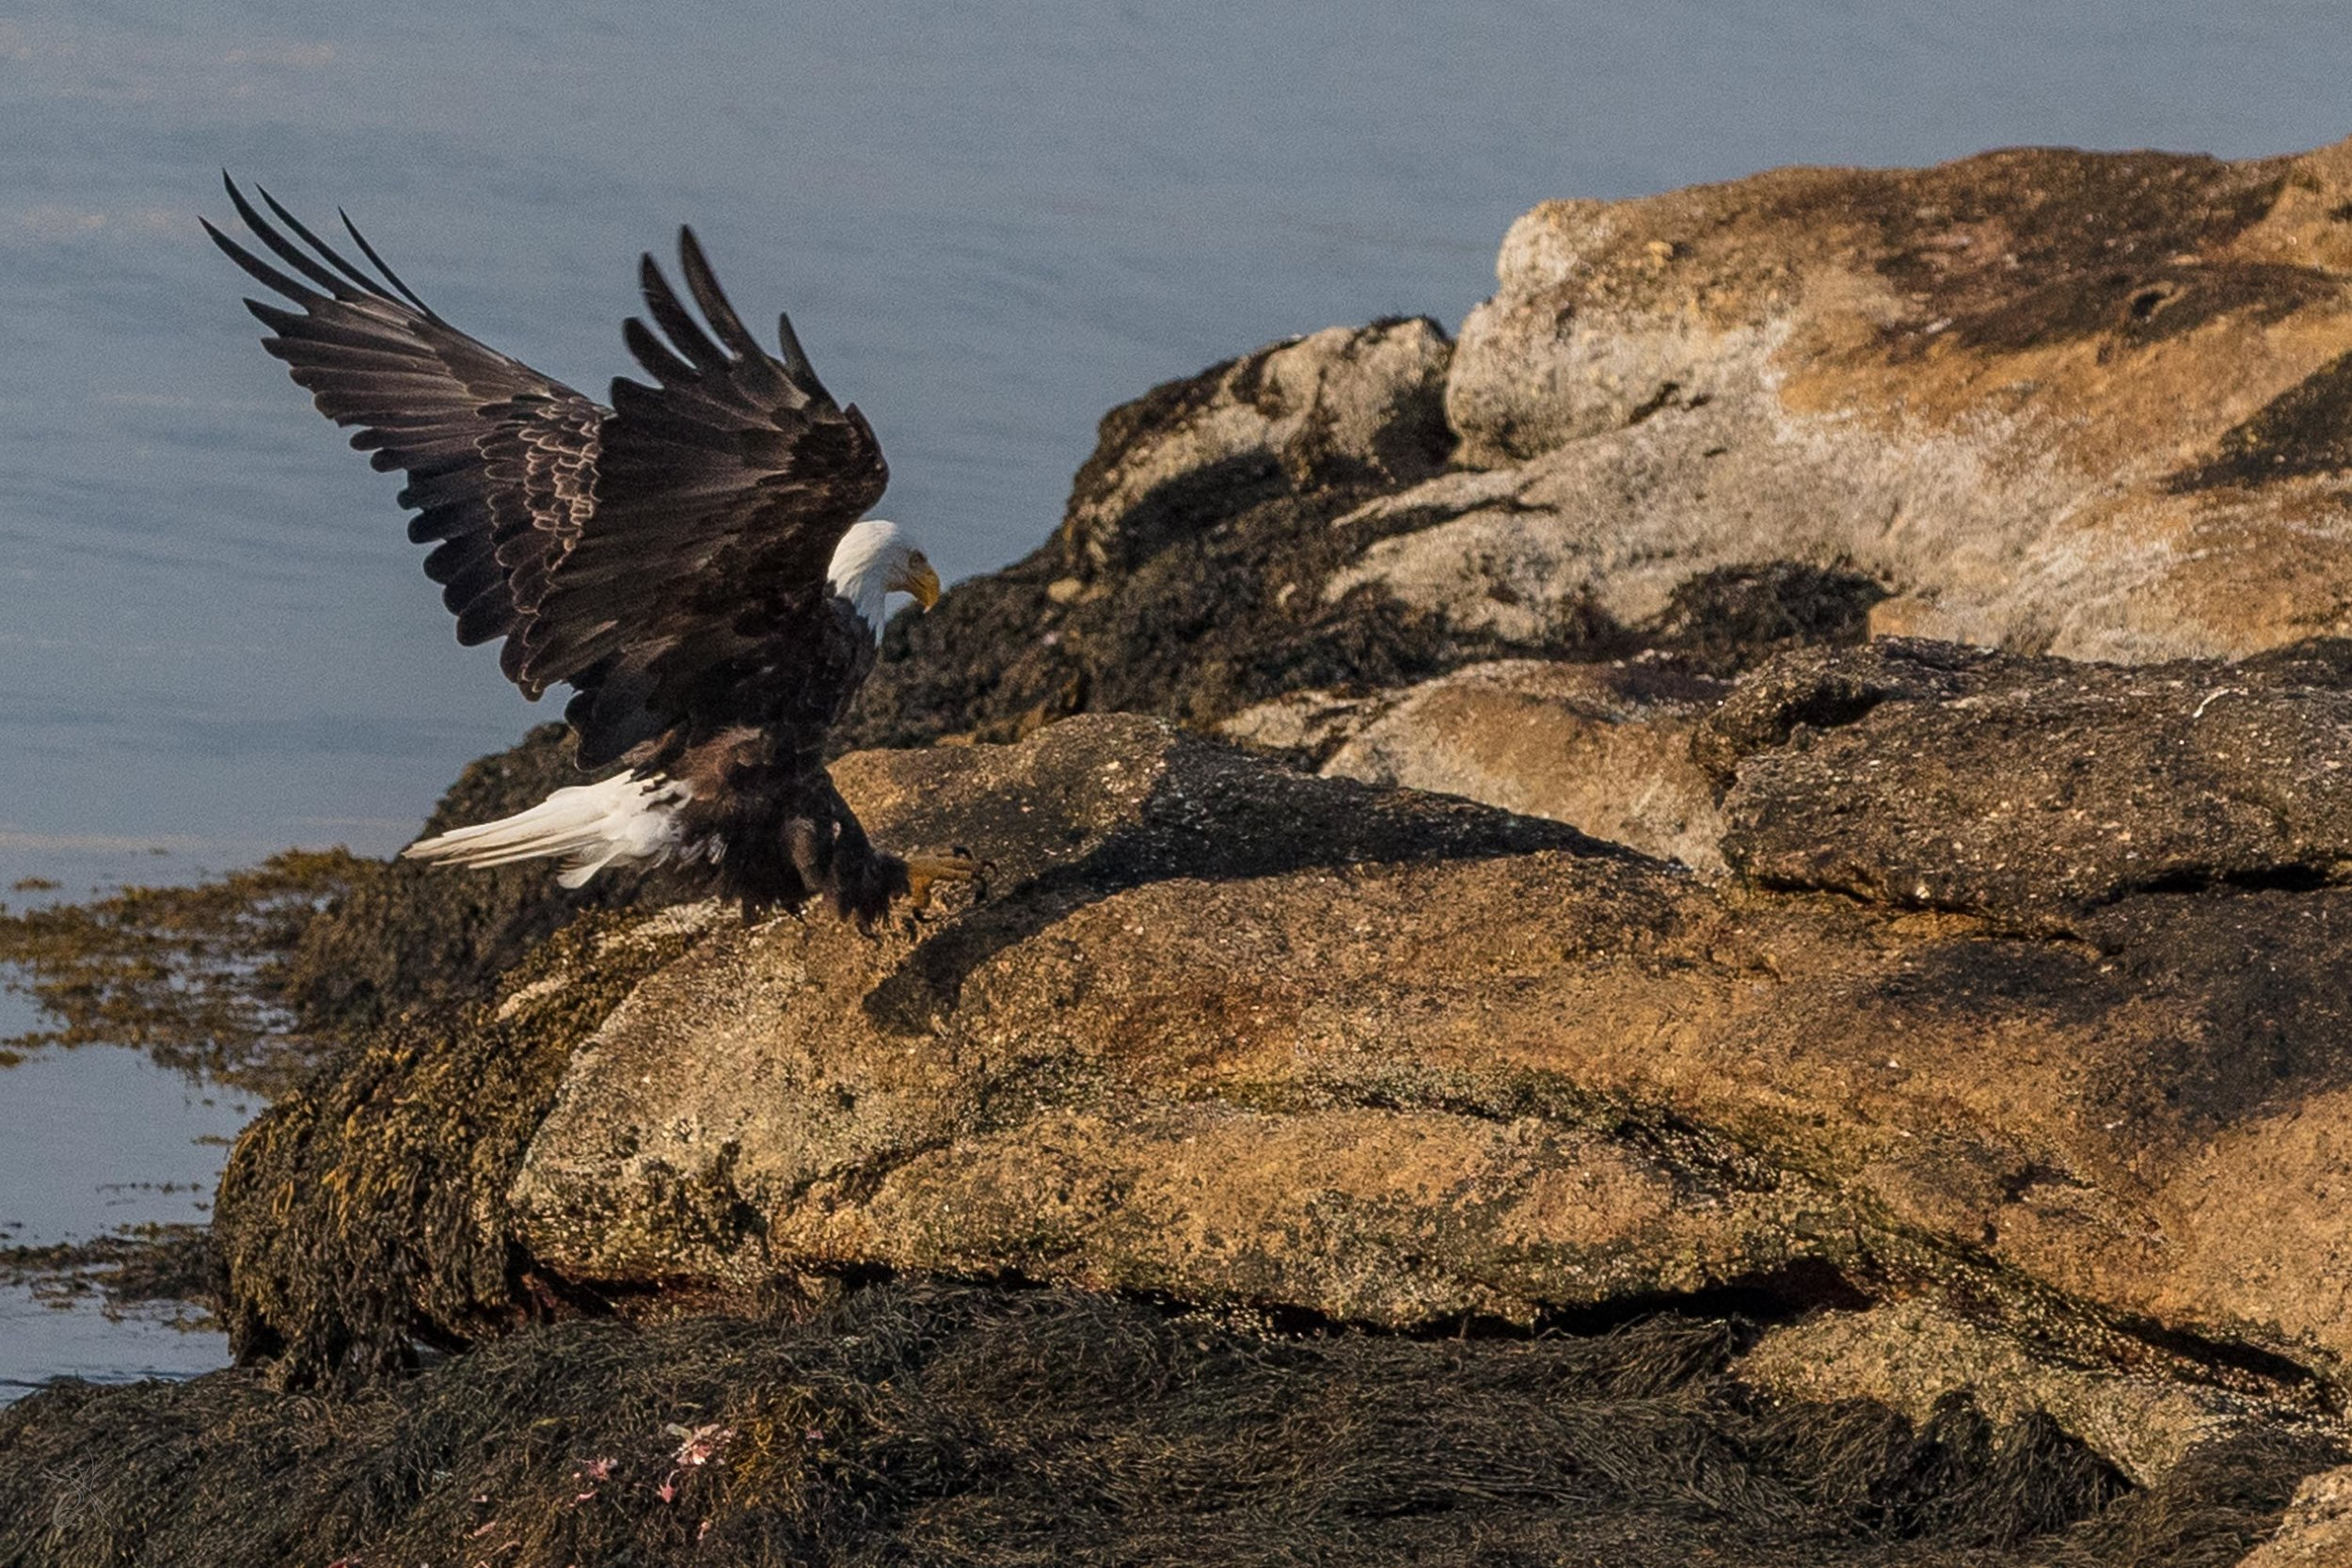 Eagle fishing at low tide